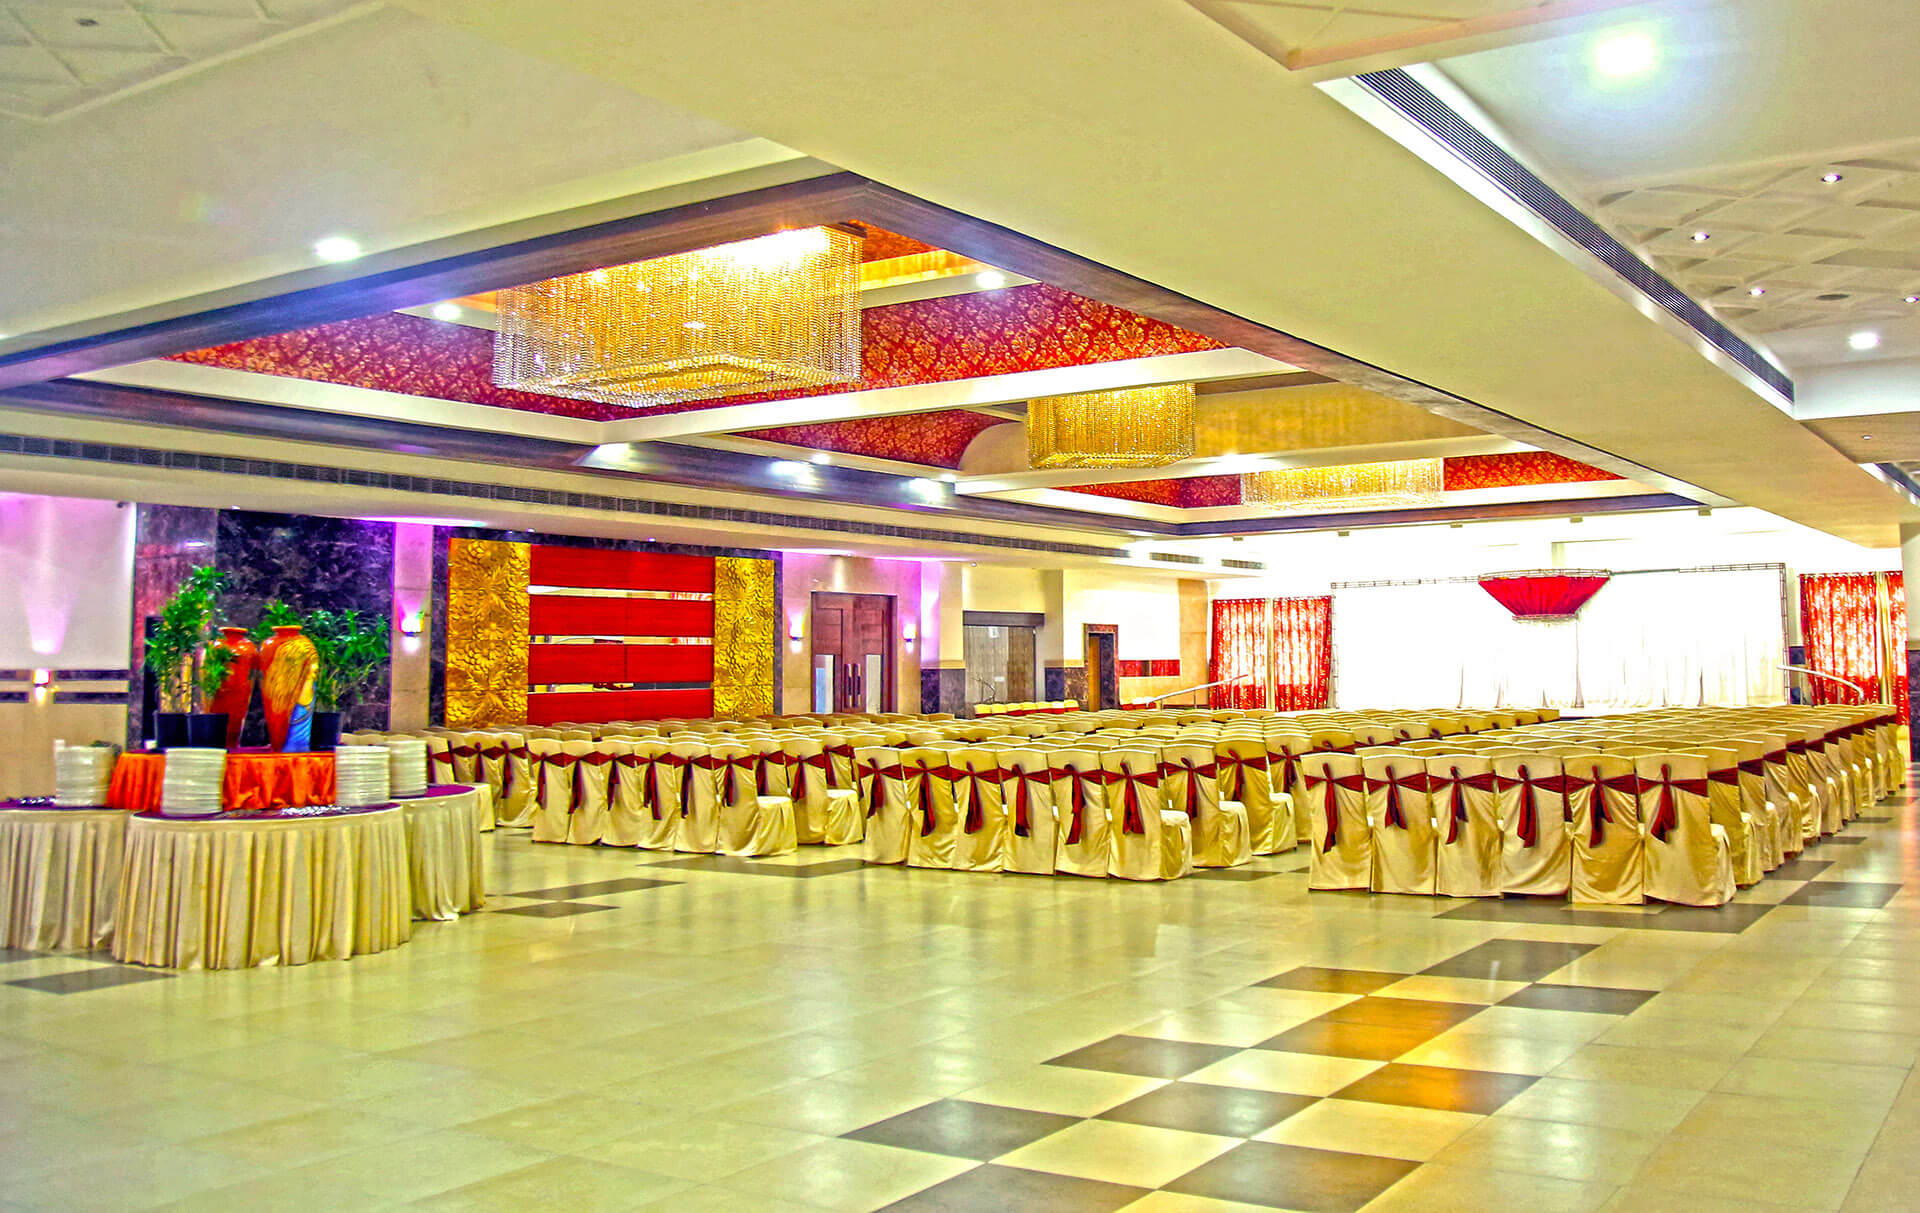 Conventions Center in Hyderabad